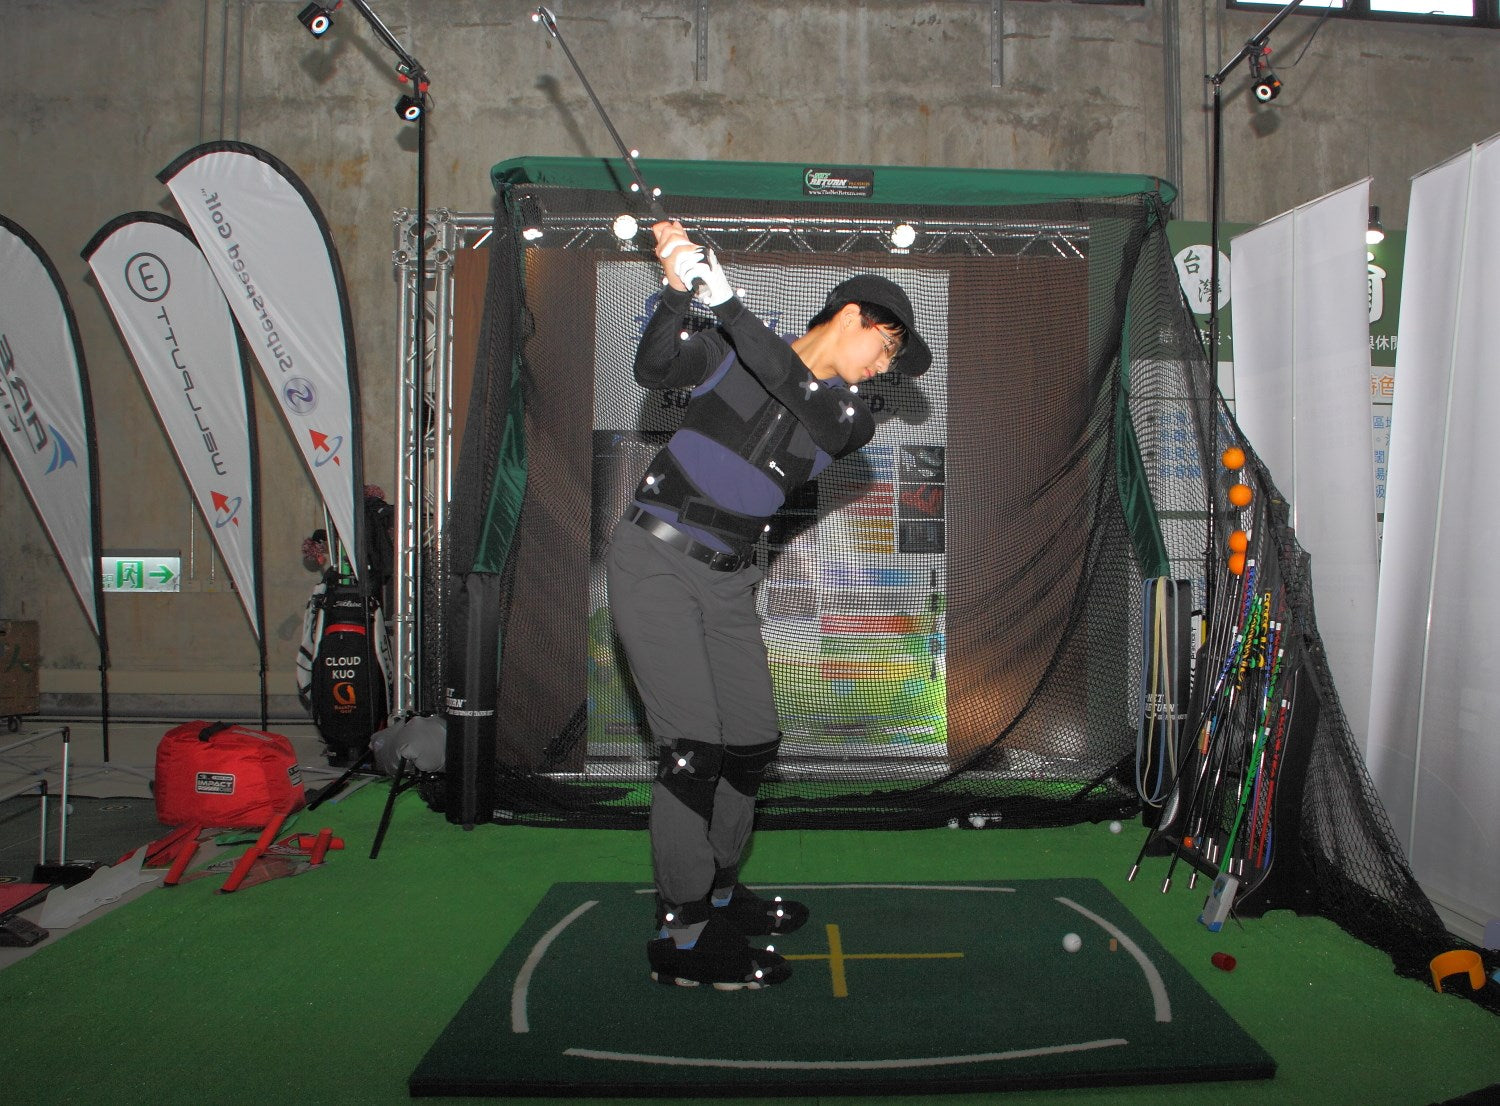 Golf Taiwan Trade Show with The Net Return Pro Series